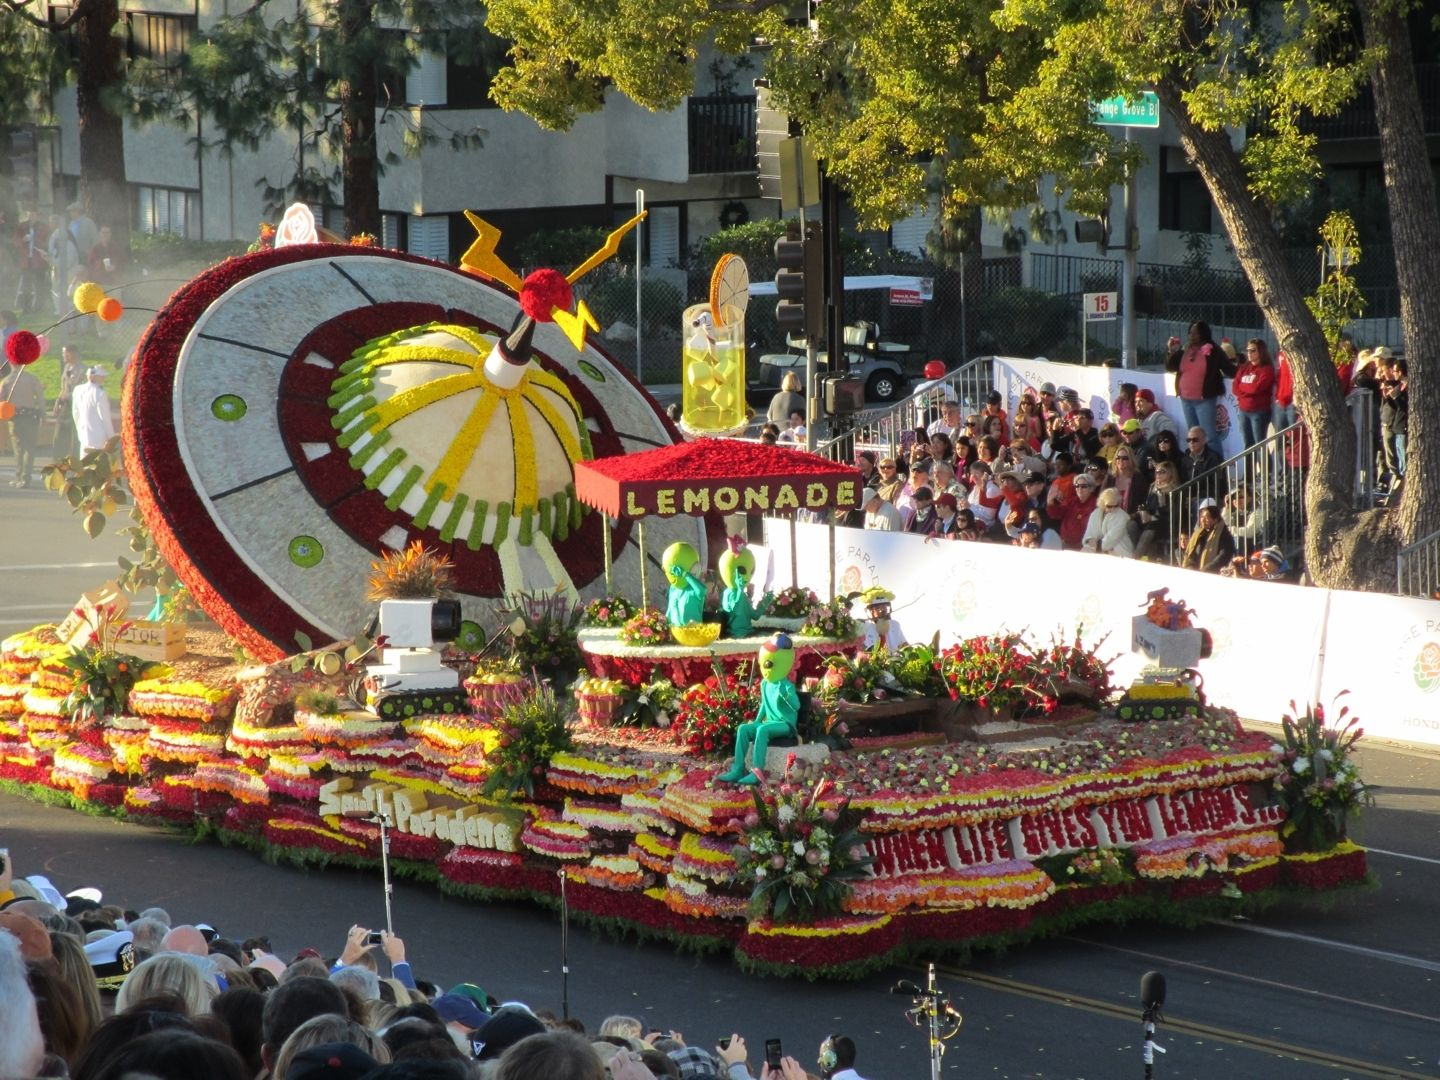 Rose Festival Parade 2020.January 2020 Events Calendar For Los Angeles In 2019 Rose